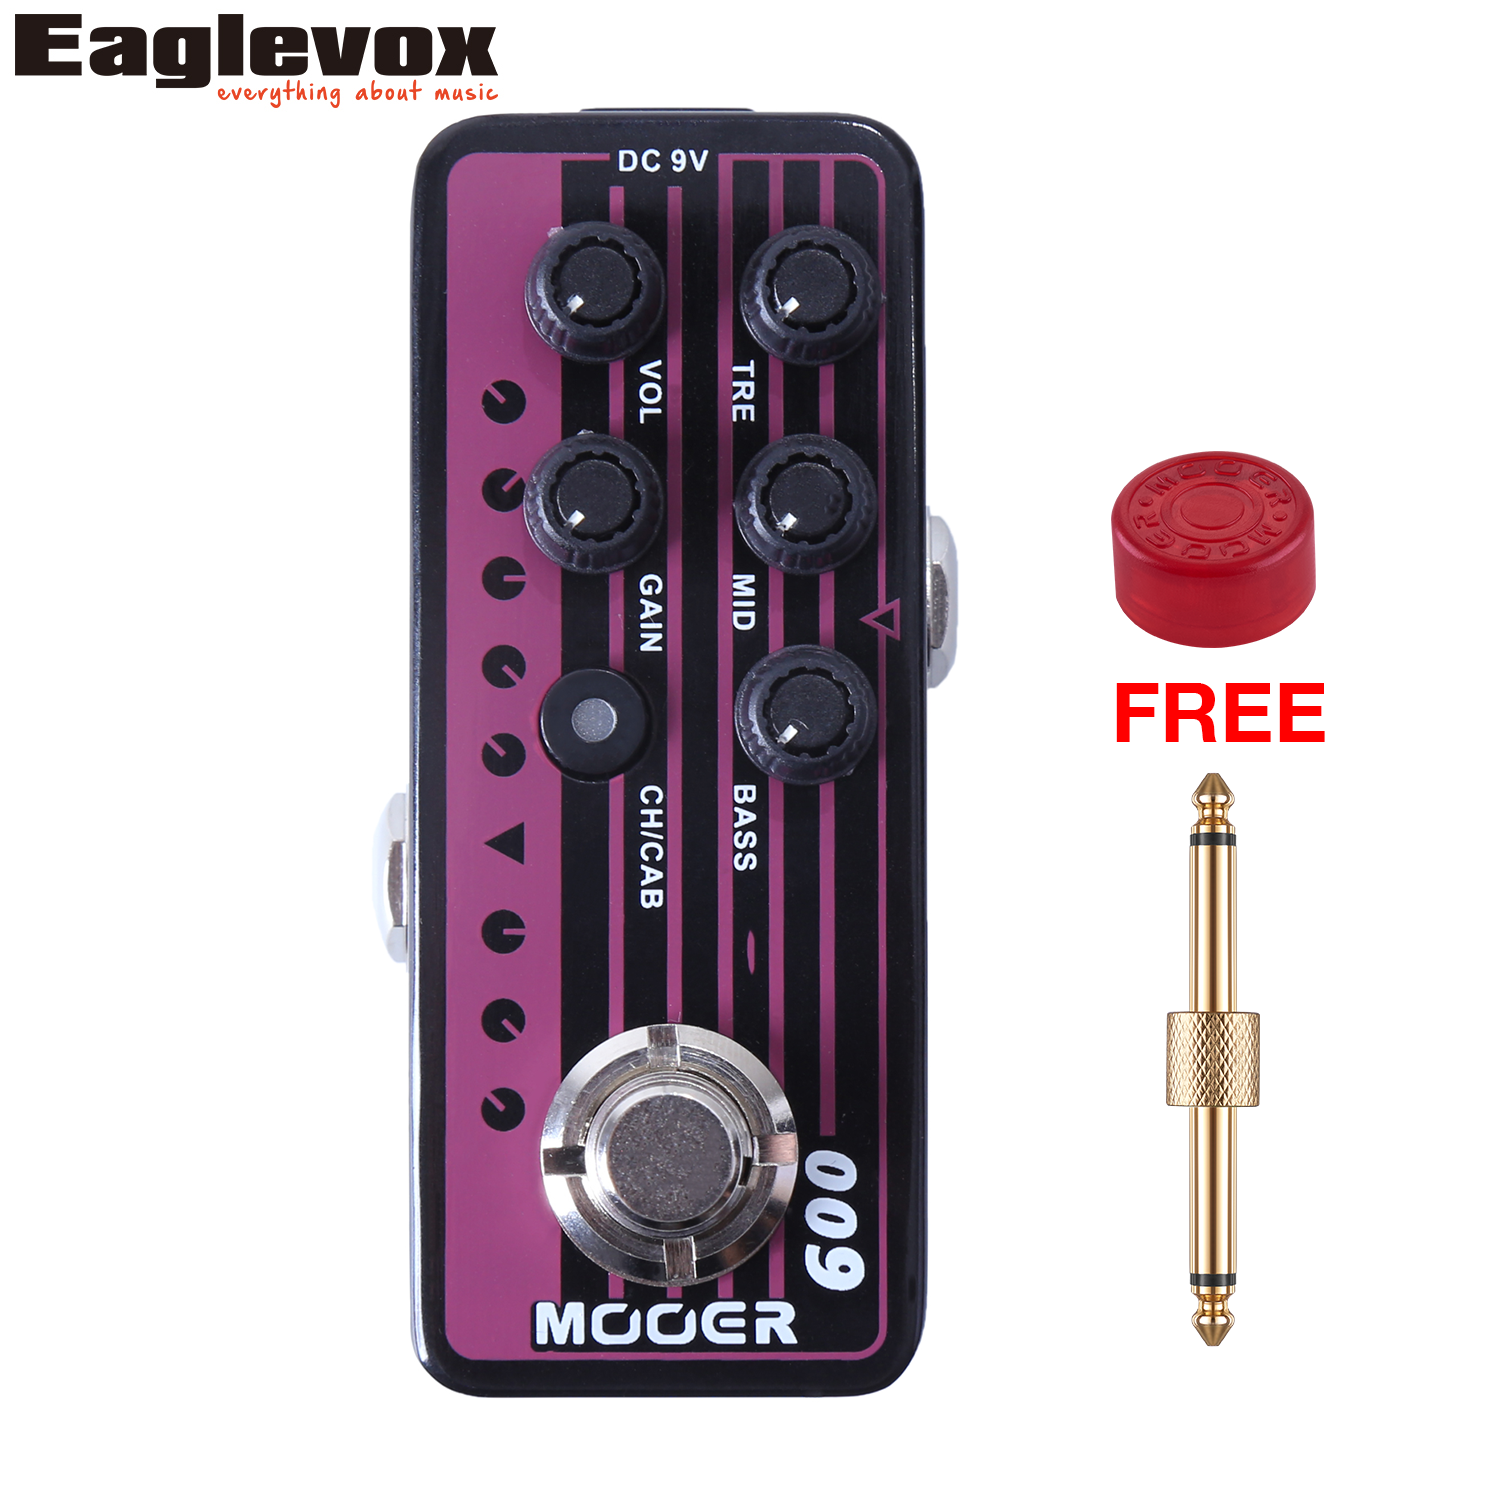 Mooer 009 Blacknight Micro Dual Channel Preamp 3 band EQ Gain Volume Controls Dual Channel with Free Gift mooer 002 uk gold 900 micro preamp dual channel 3 band eq gain volume controls guitar effect pedal with free gift